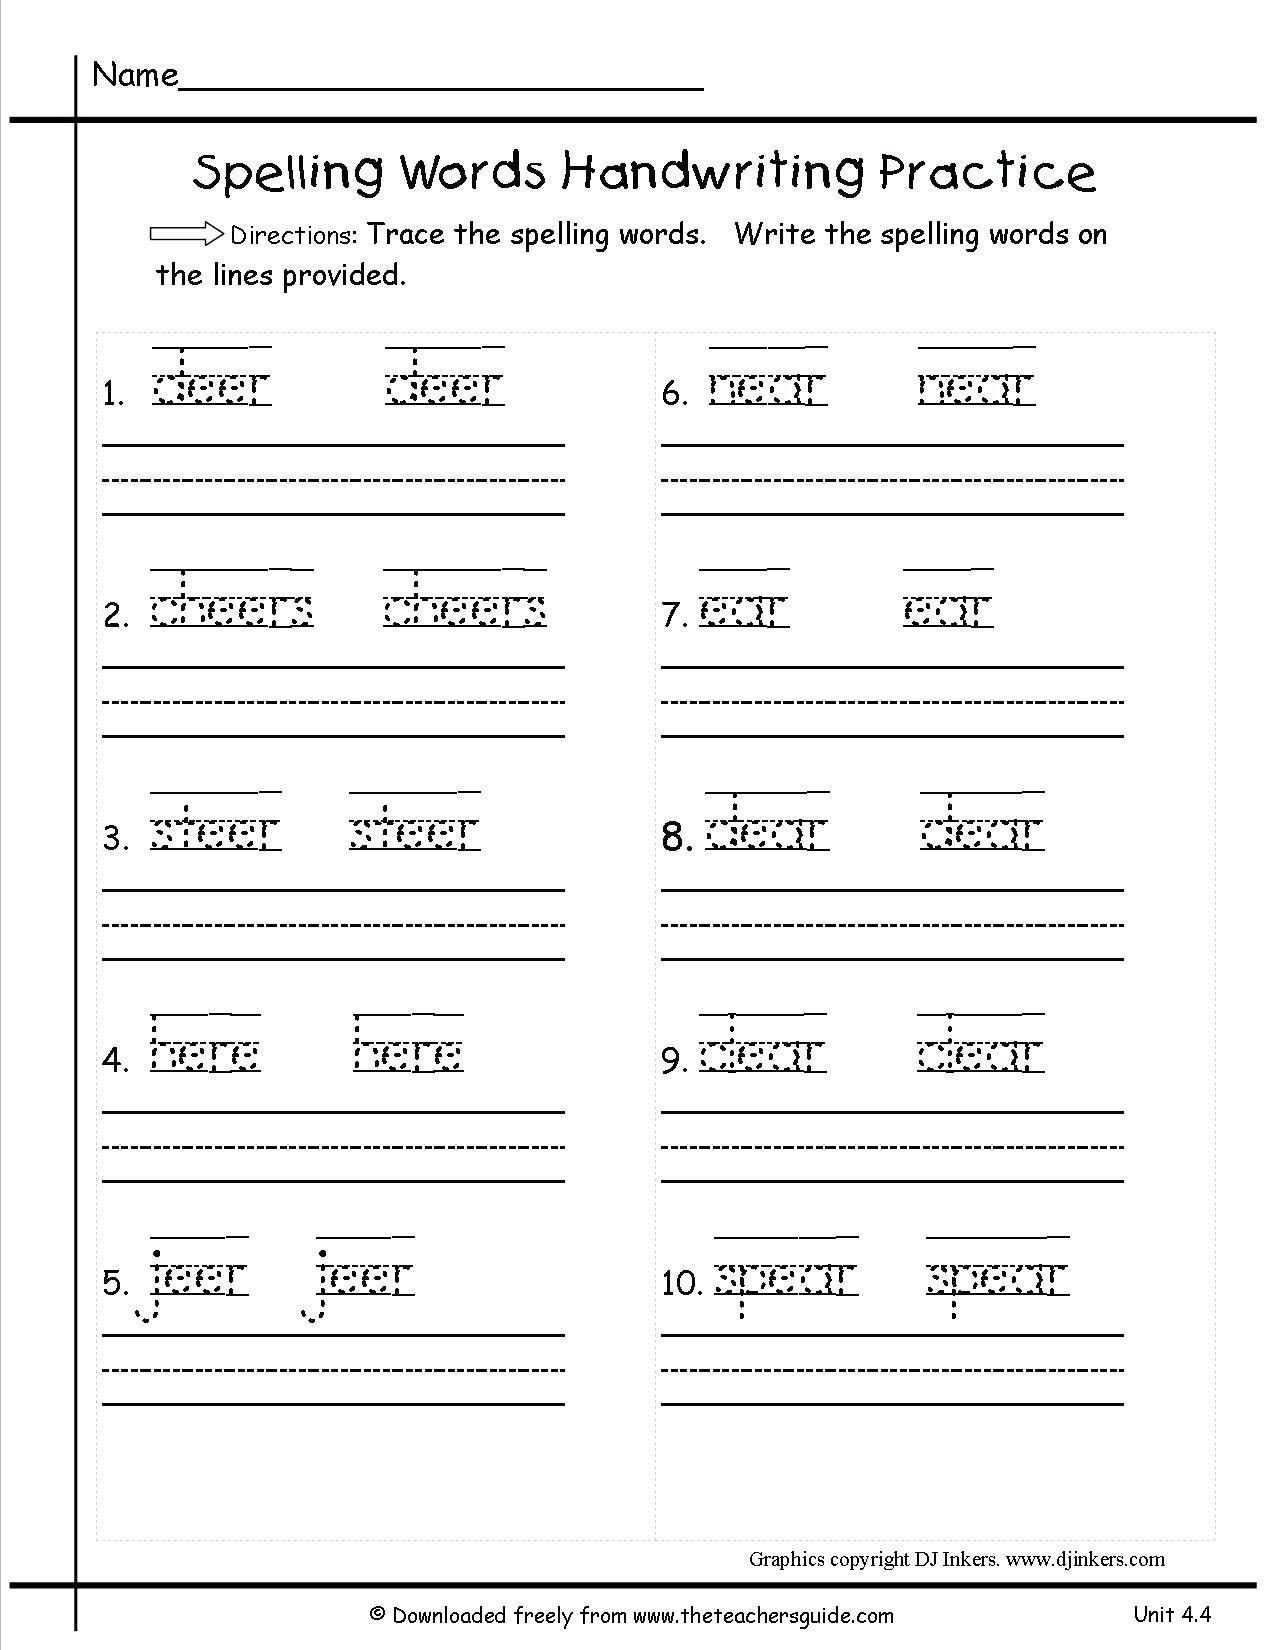 Creative Writing Worksheets for Adults Math Worksheet 61 Free Writing Worksheets